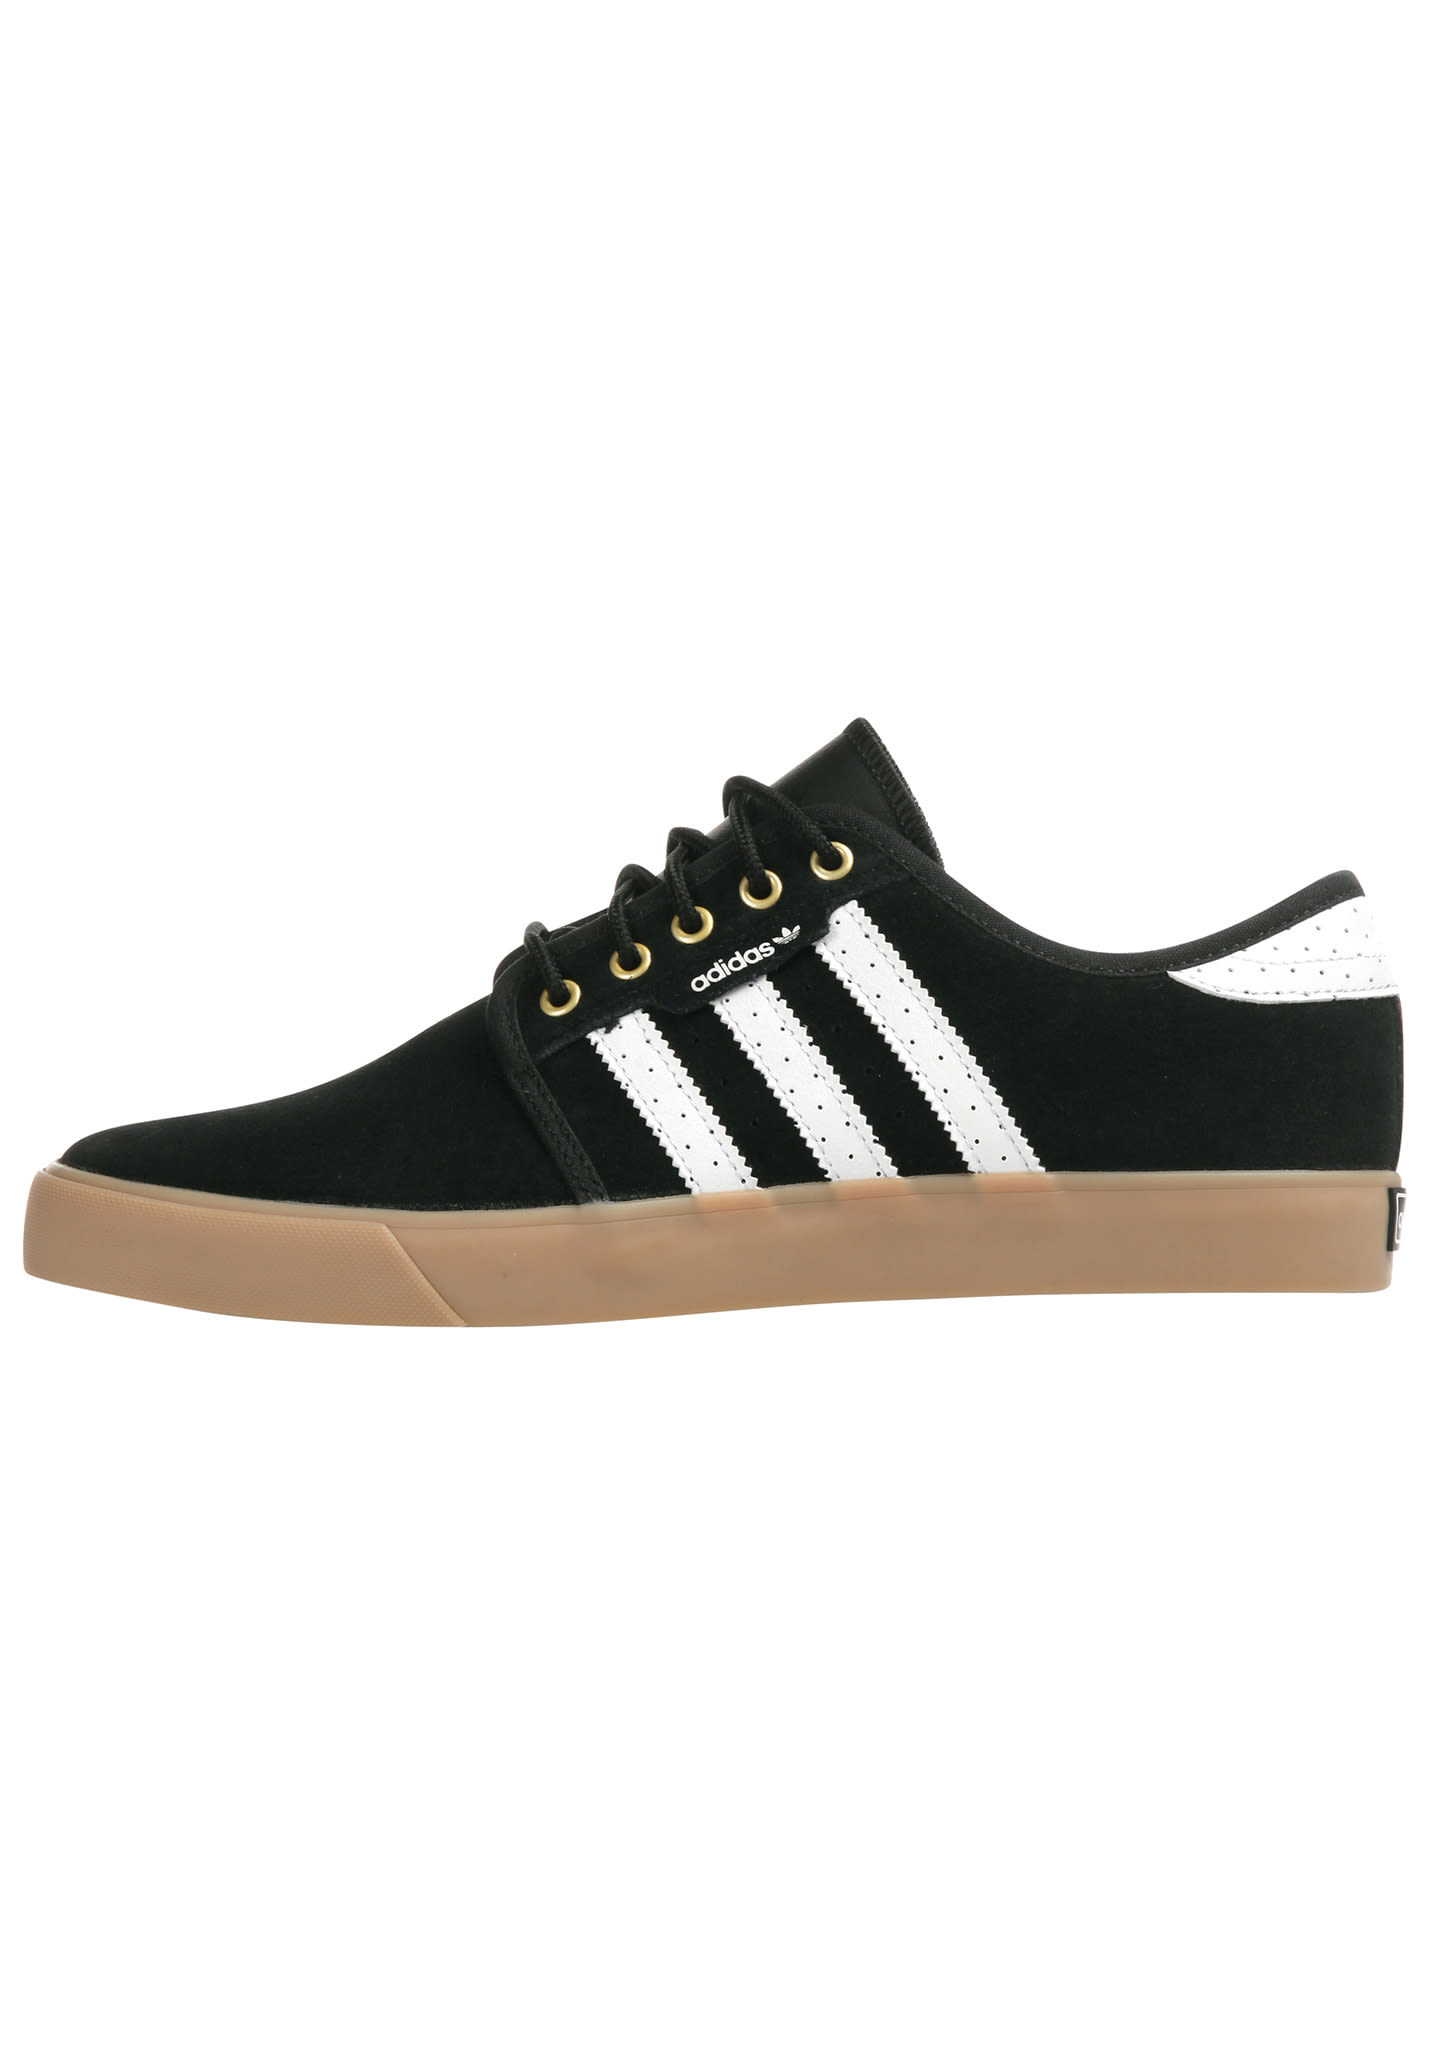 best authentic 114a4 ae433 Adidas Skateboarding Seeley - Sneaker per Uomo - Nero - Planet Sports